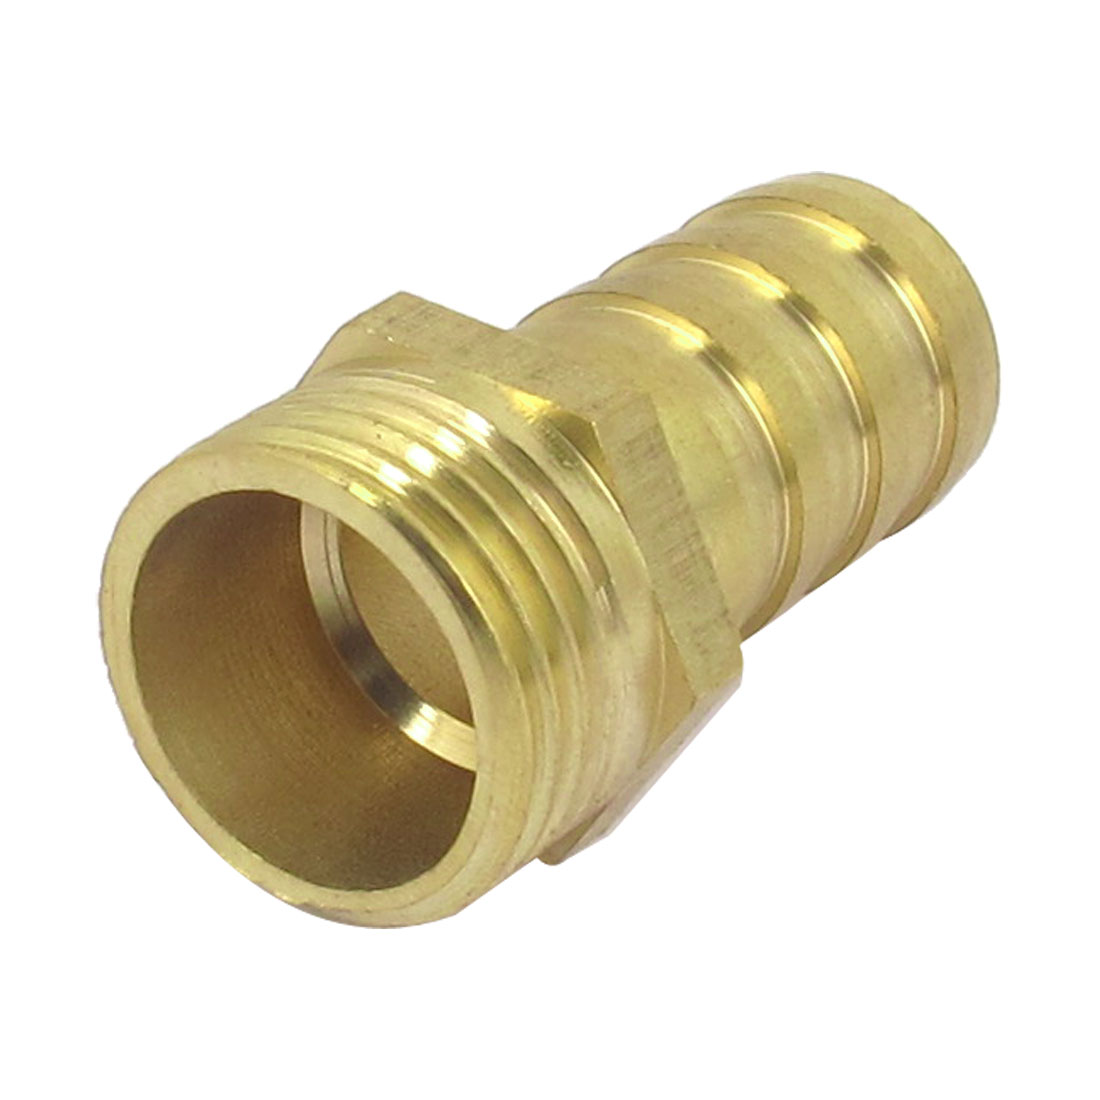 1/2BSP Male Thread to 16mm Hose Barb Straight Coupler Pneumatic Air Tube Tubing Pipe Quick Coupling